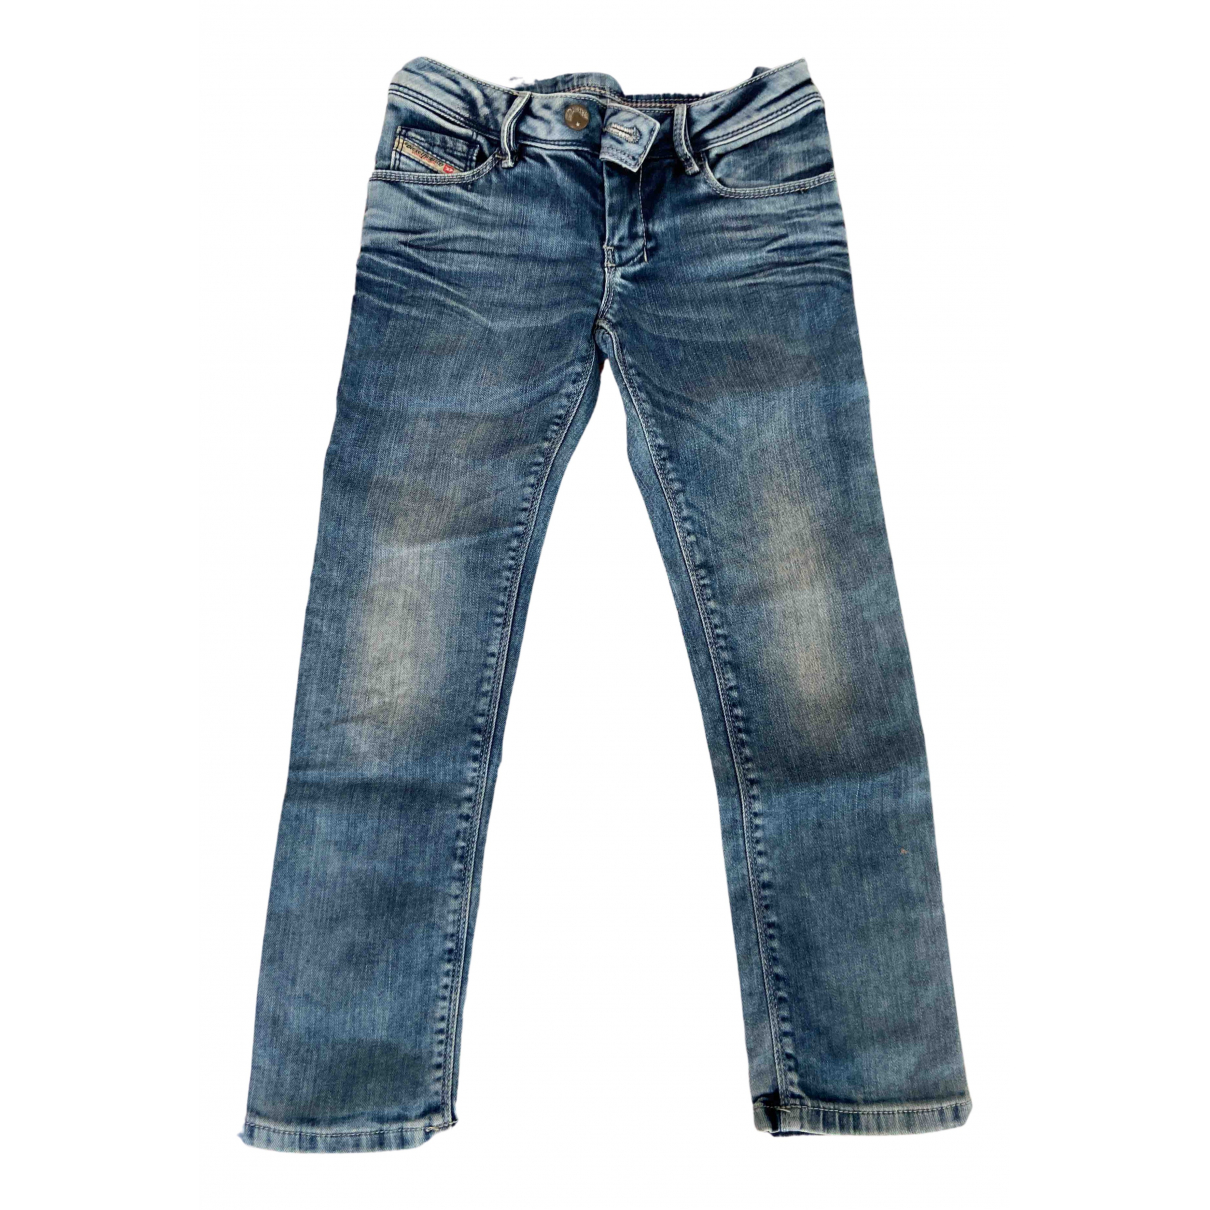 Diesel N Blue Cotton Trousers for Kids 6 years - up to 114cm FR